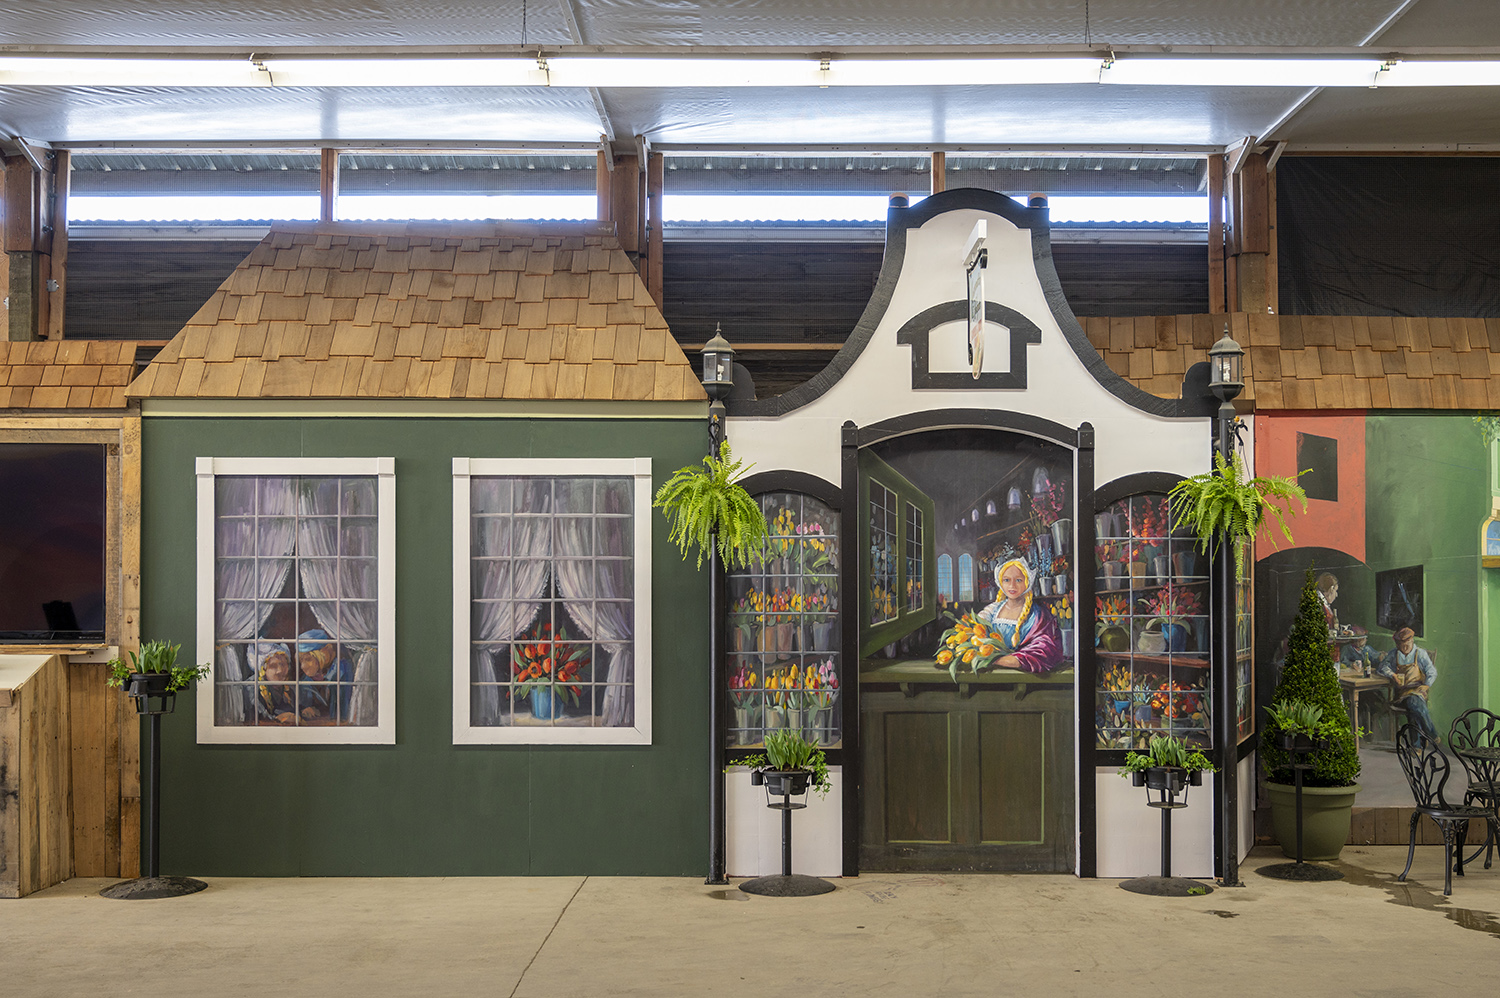 Local artist and 2020 tulip poster artist, Jennifer Bowman, created the beautiful murals inside Tulip Town's bulb market. Her artwork is just as beautiful as the blooms outside. (Rachael Jones / Seattle Refined)